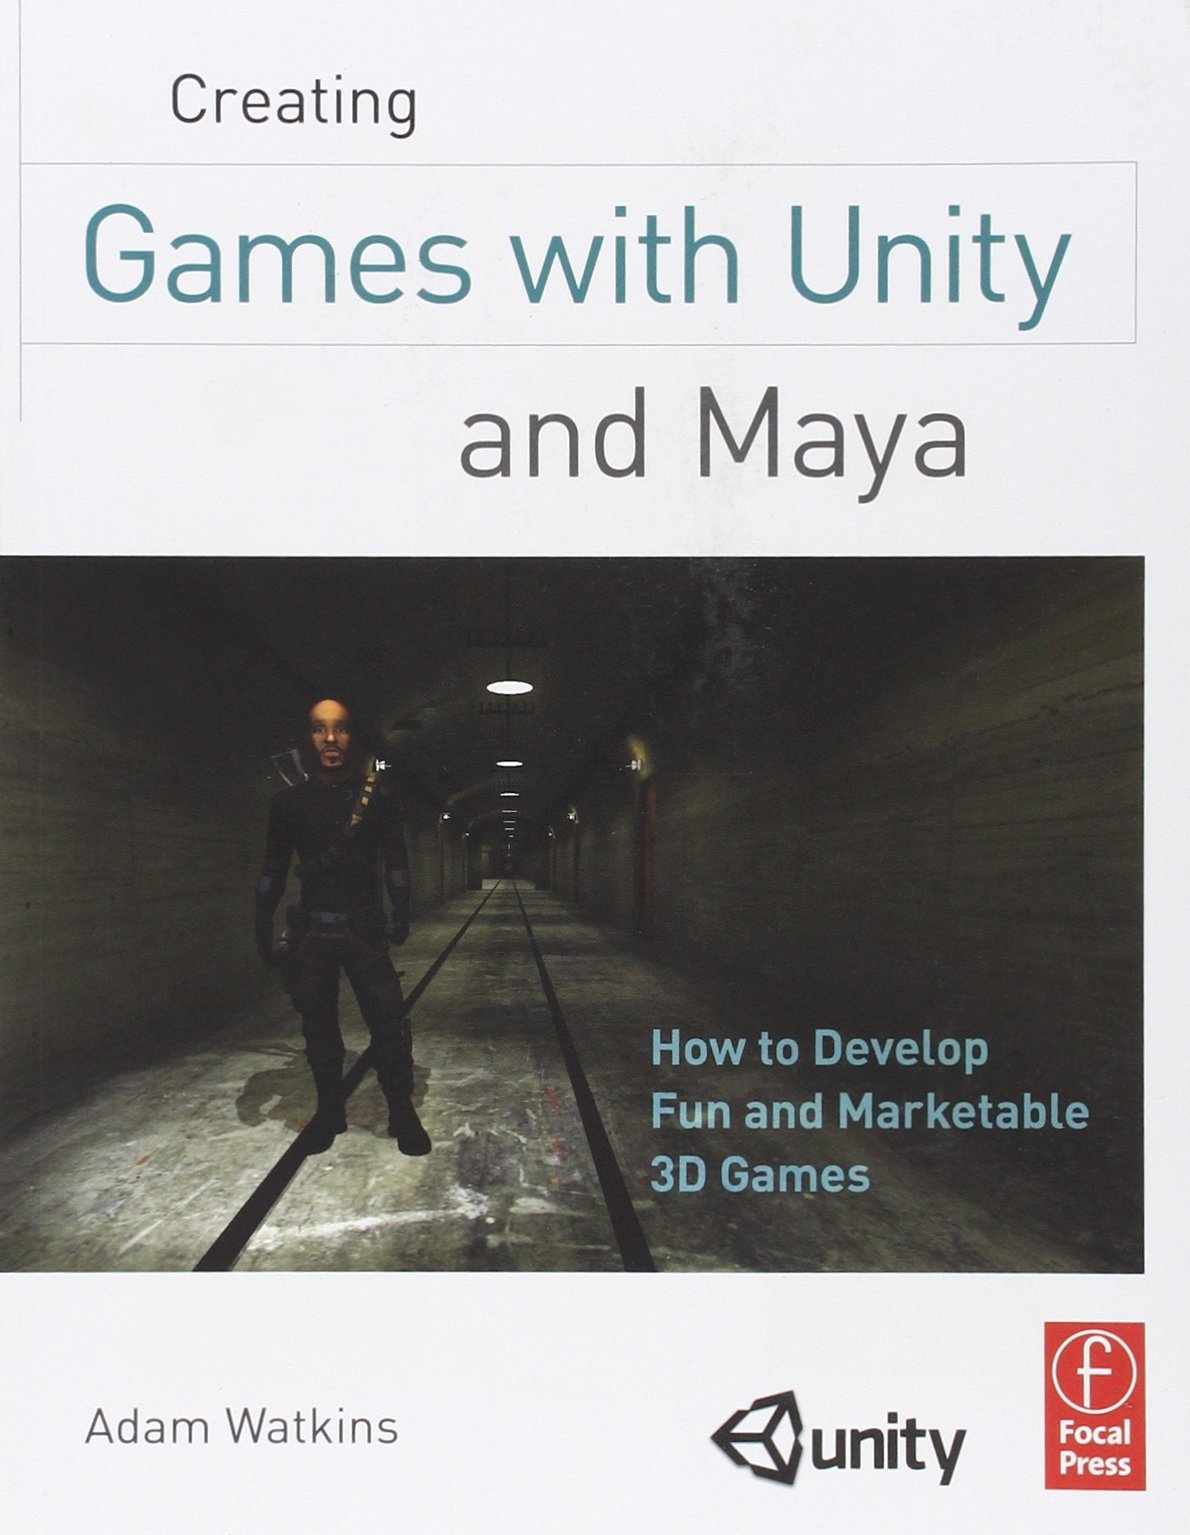 Creating Games with Unity and Maya: How to Develop Fun and